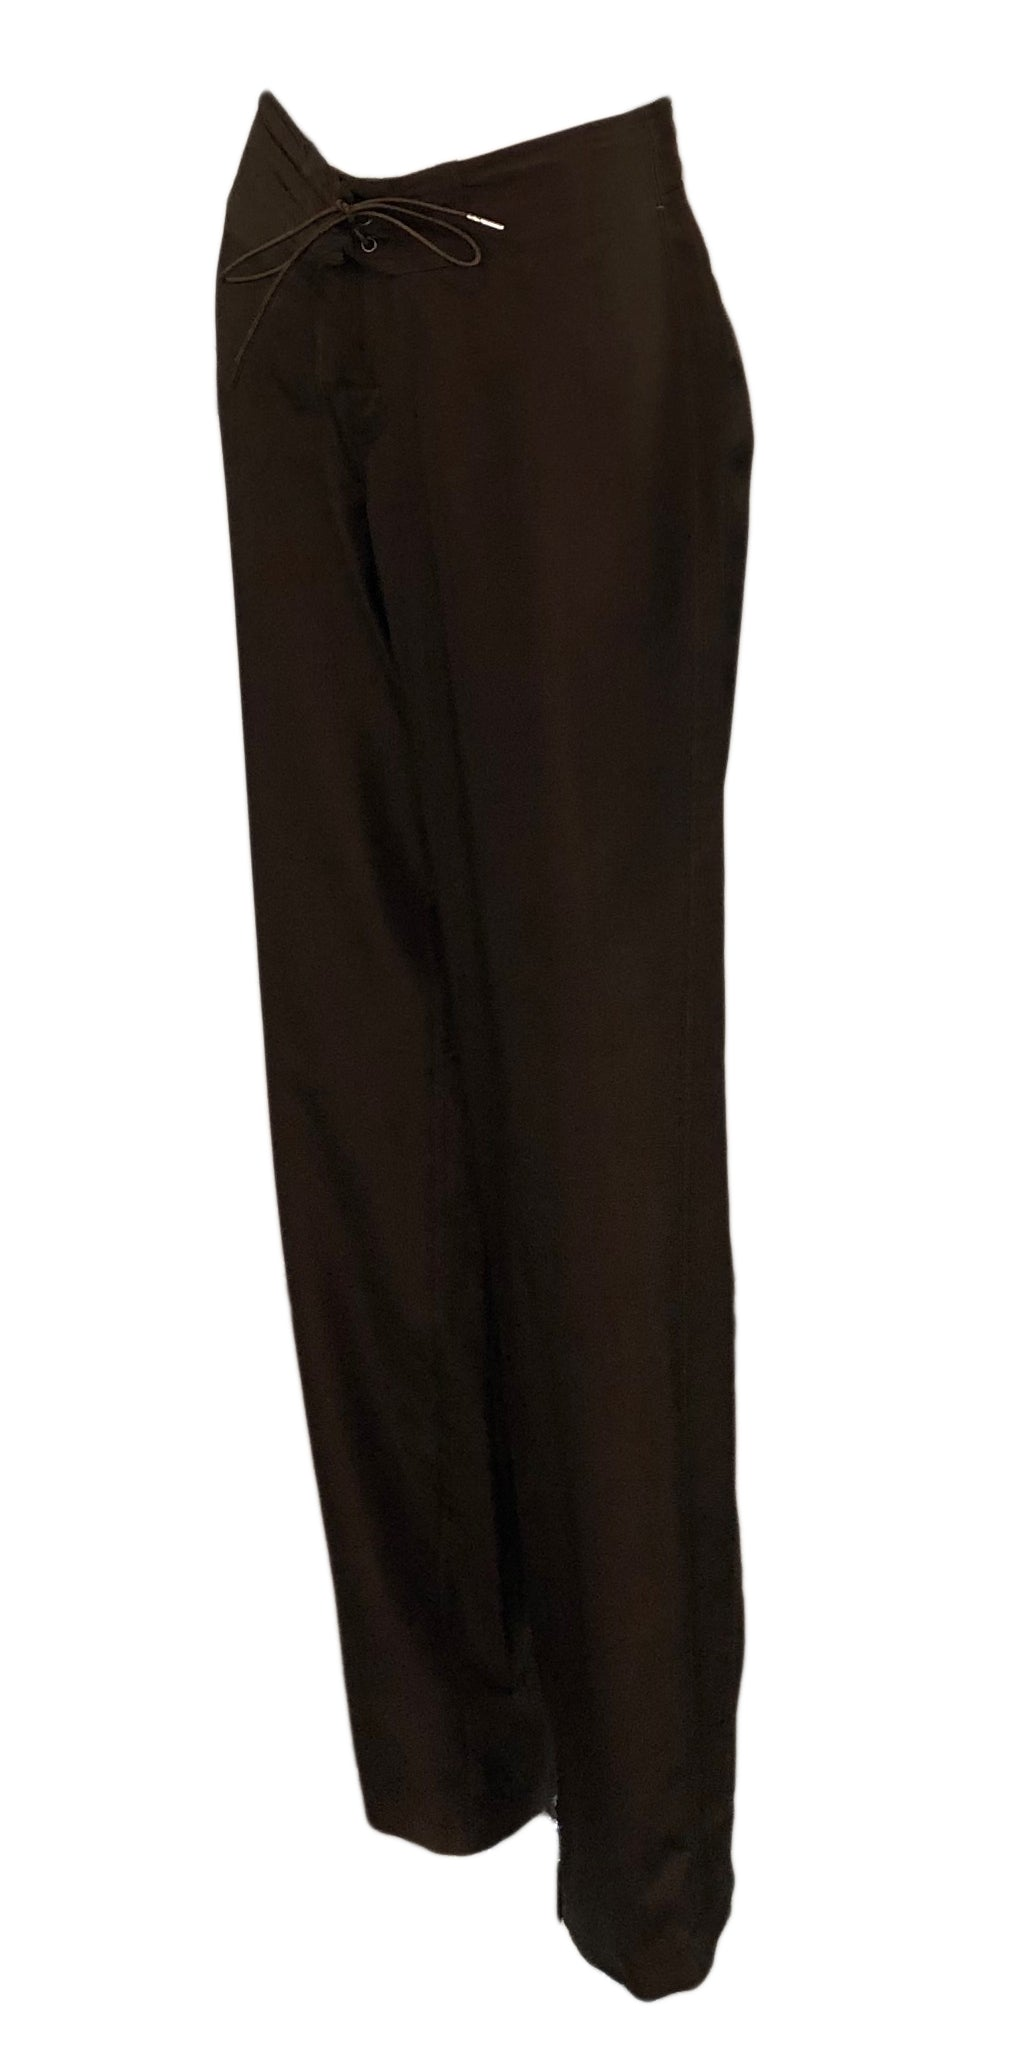 Tom Ford for Gucci Brown Drawstring Pants